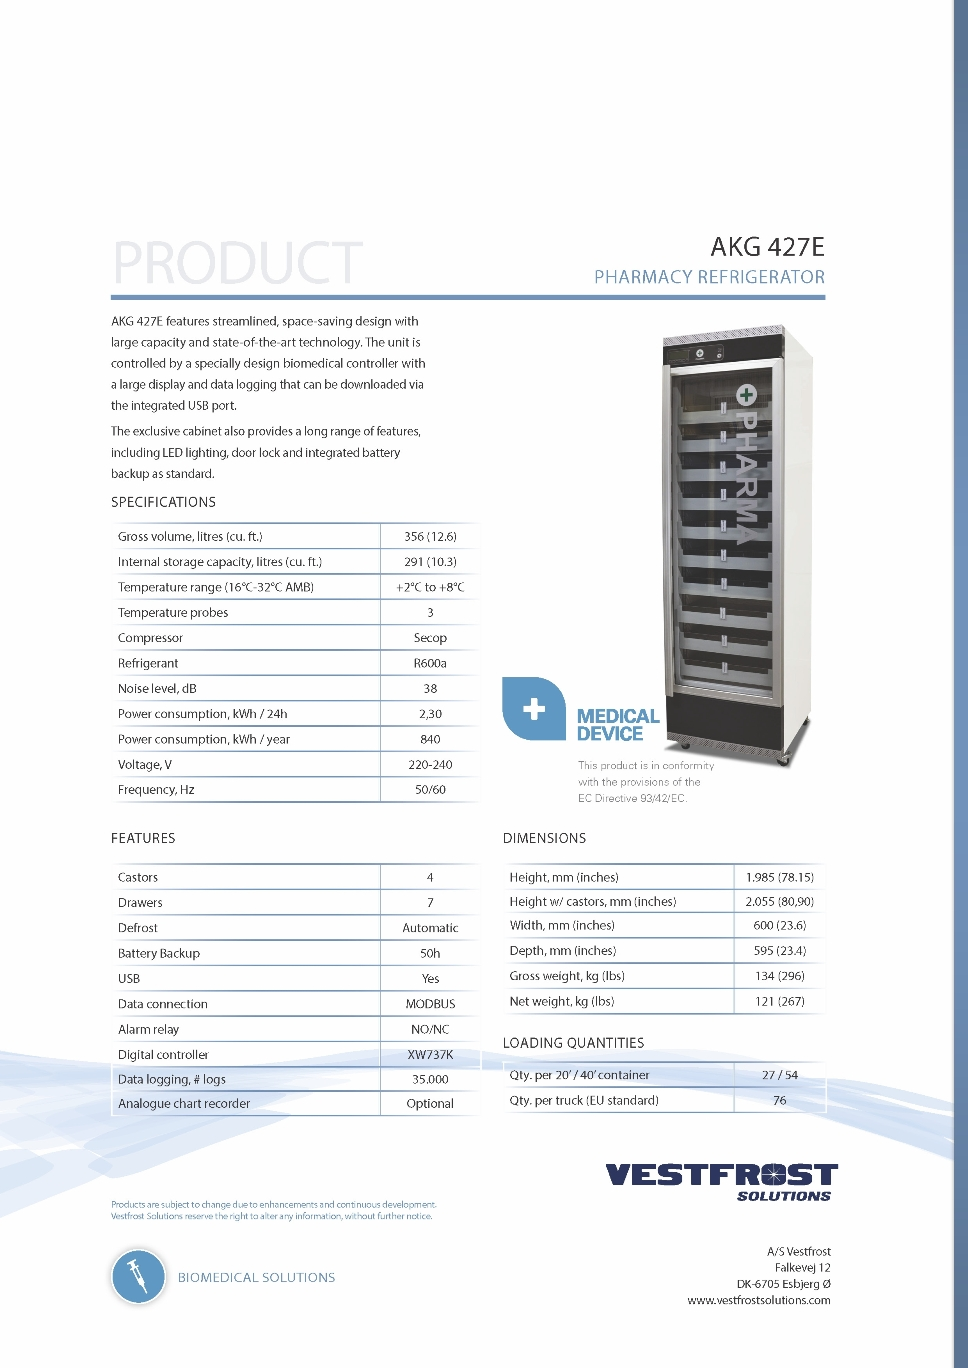 Pages from 2015 - Product Flyer - AKG 427E - Pharmacy Refrigerator.jpg (395371 bytes)